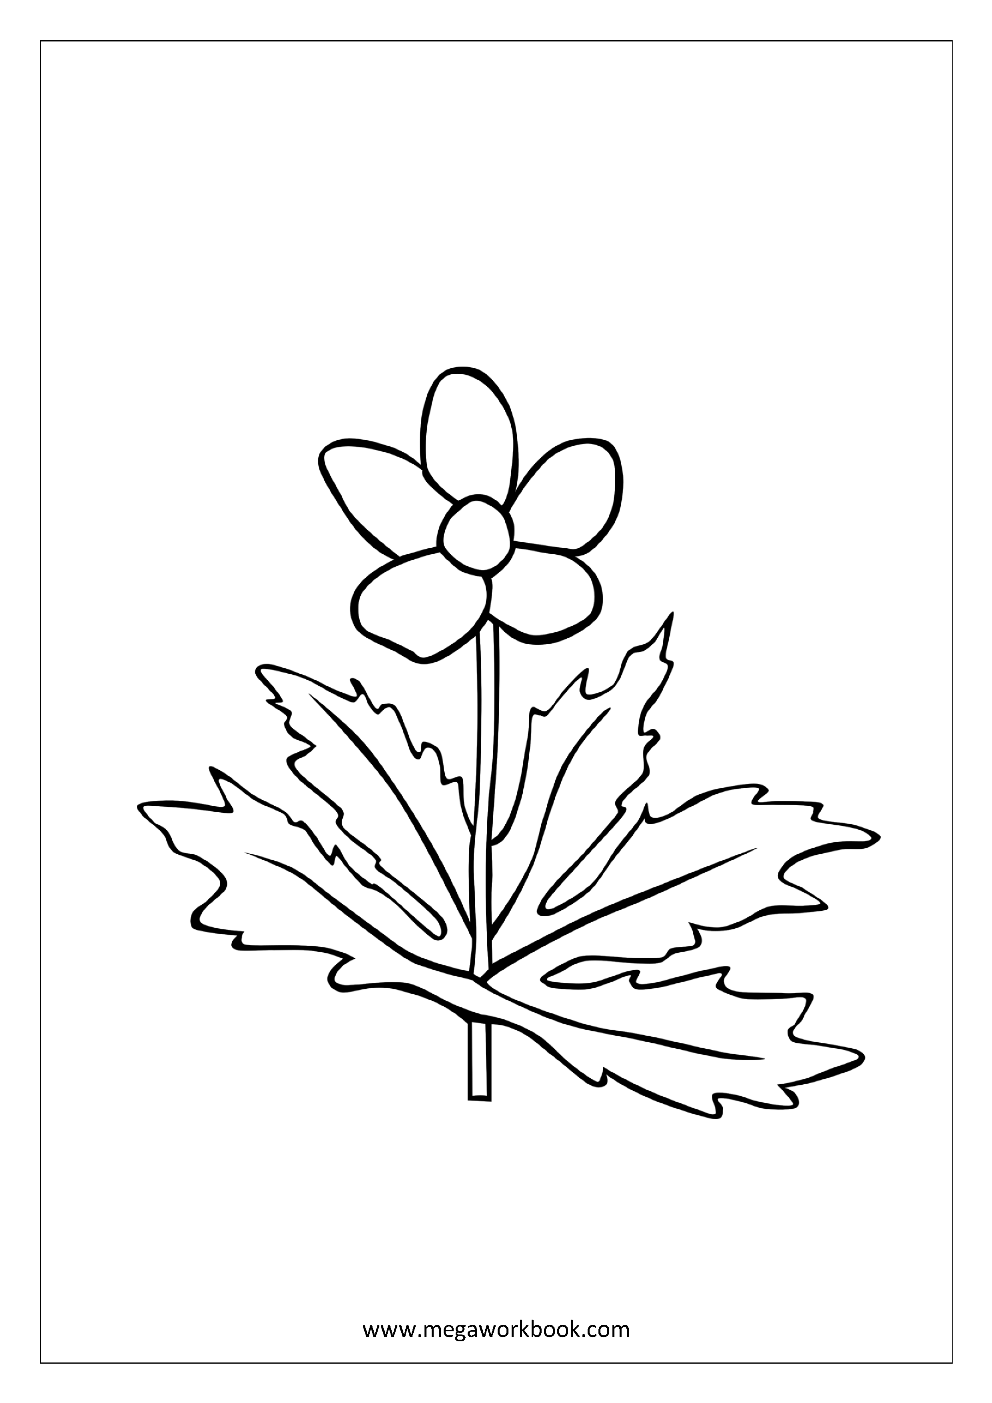 Flower Coloring Pages Plant Tree Coloring Pages Leaf Coloring Pages Free Printables Coloring Sheets Megaworkbook